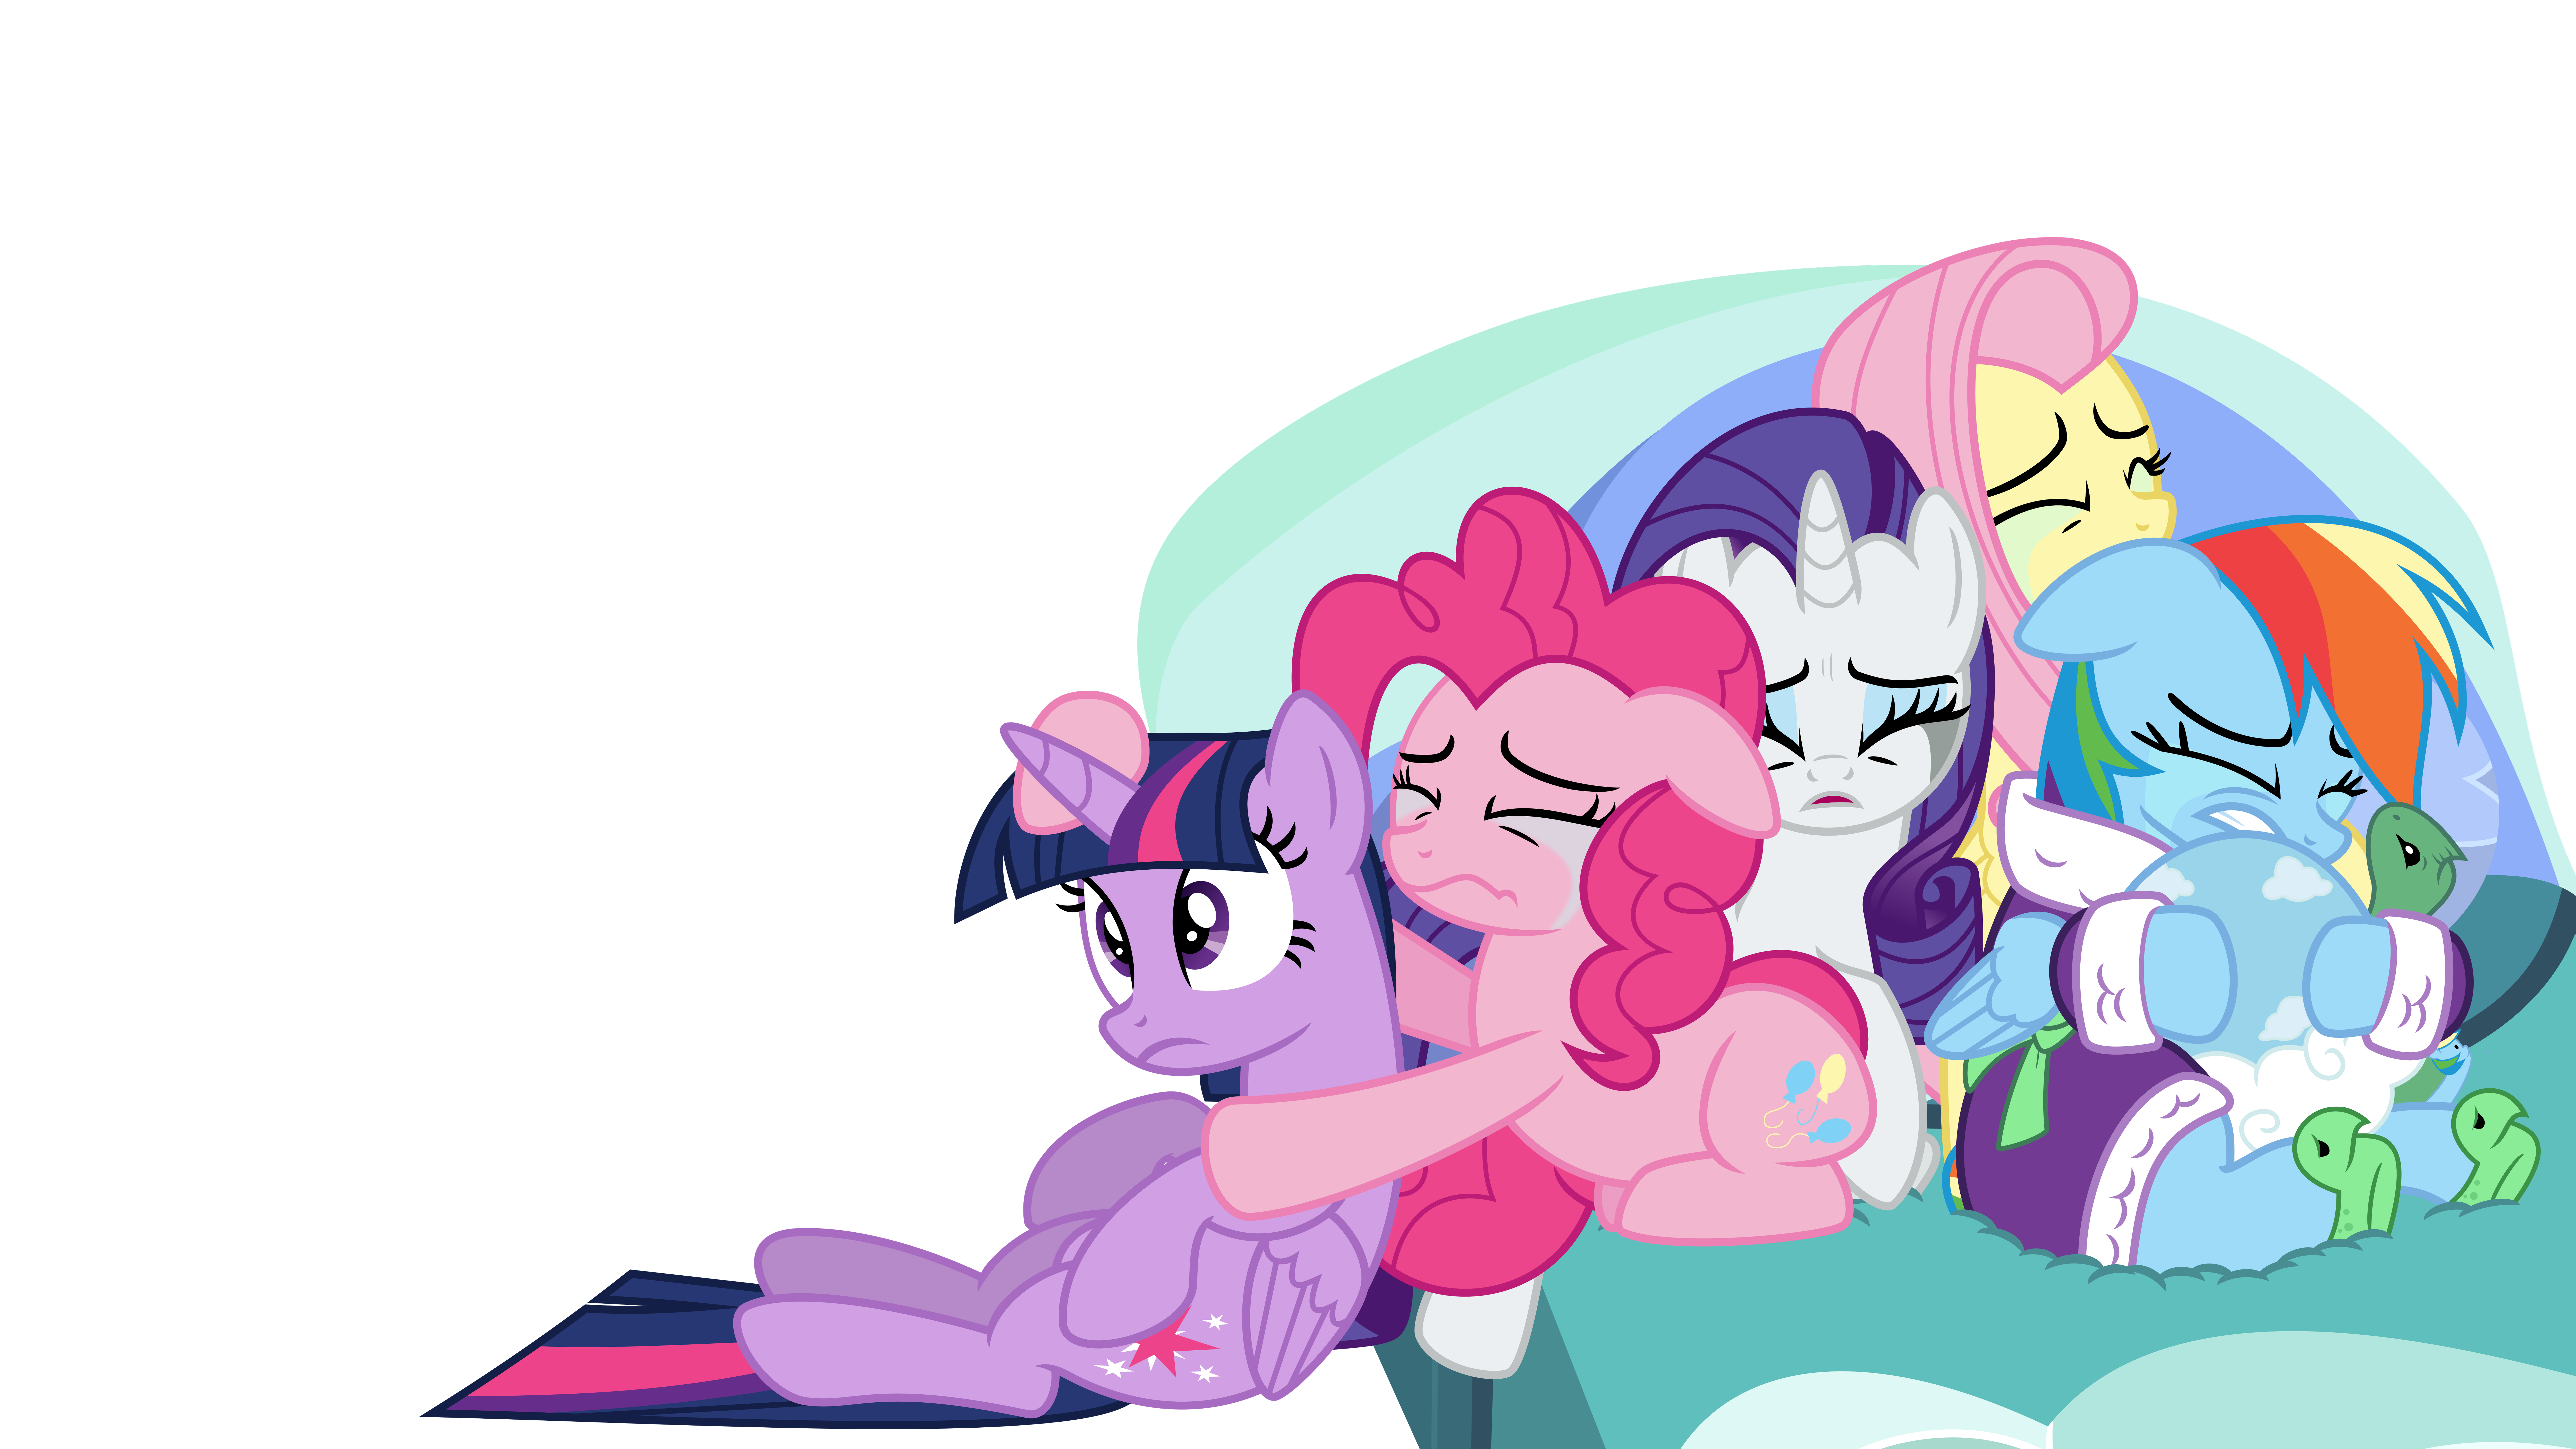 S05E05 Crying Ponies By S-Guri On DeviantArt